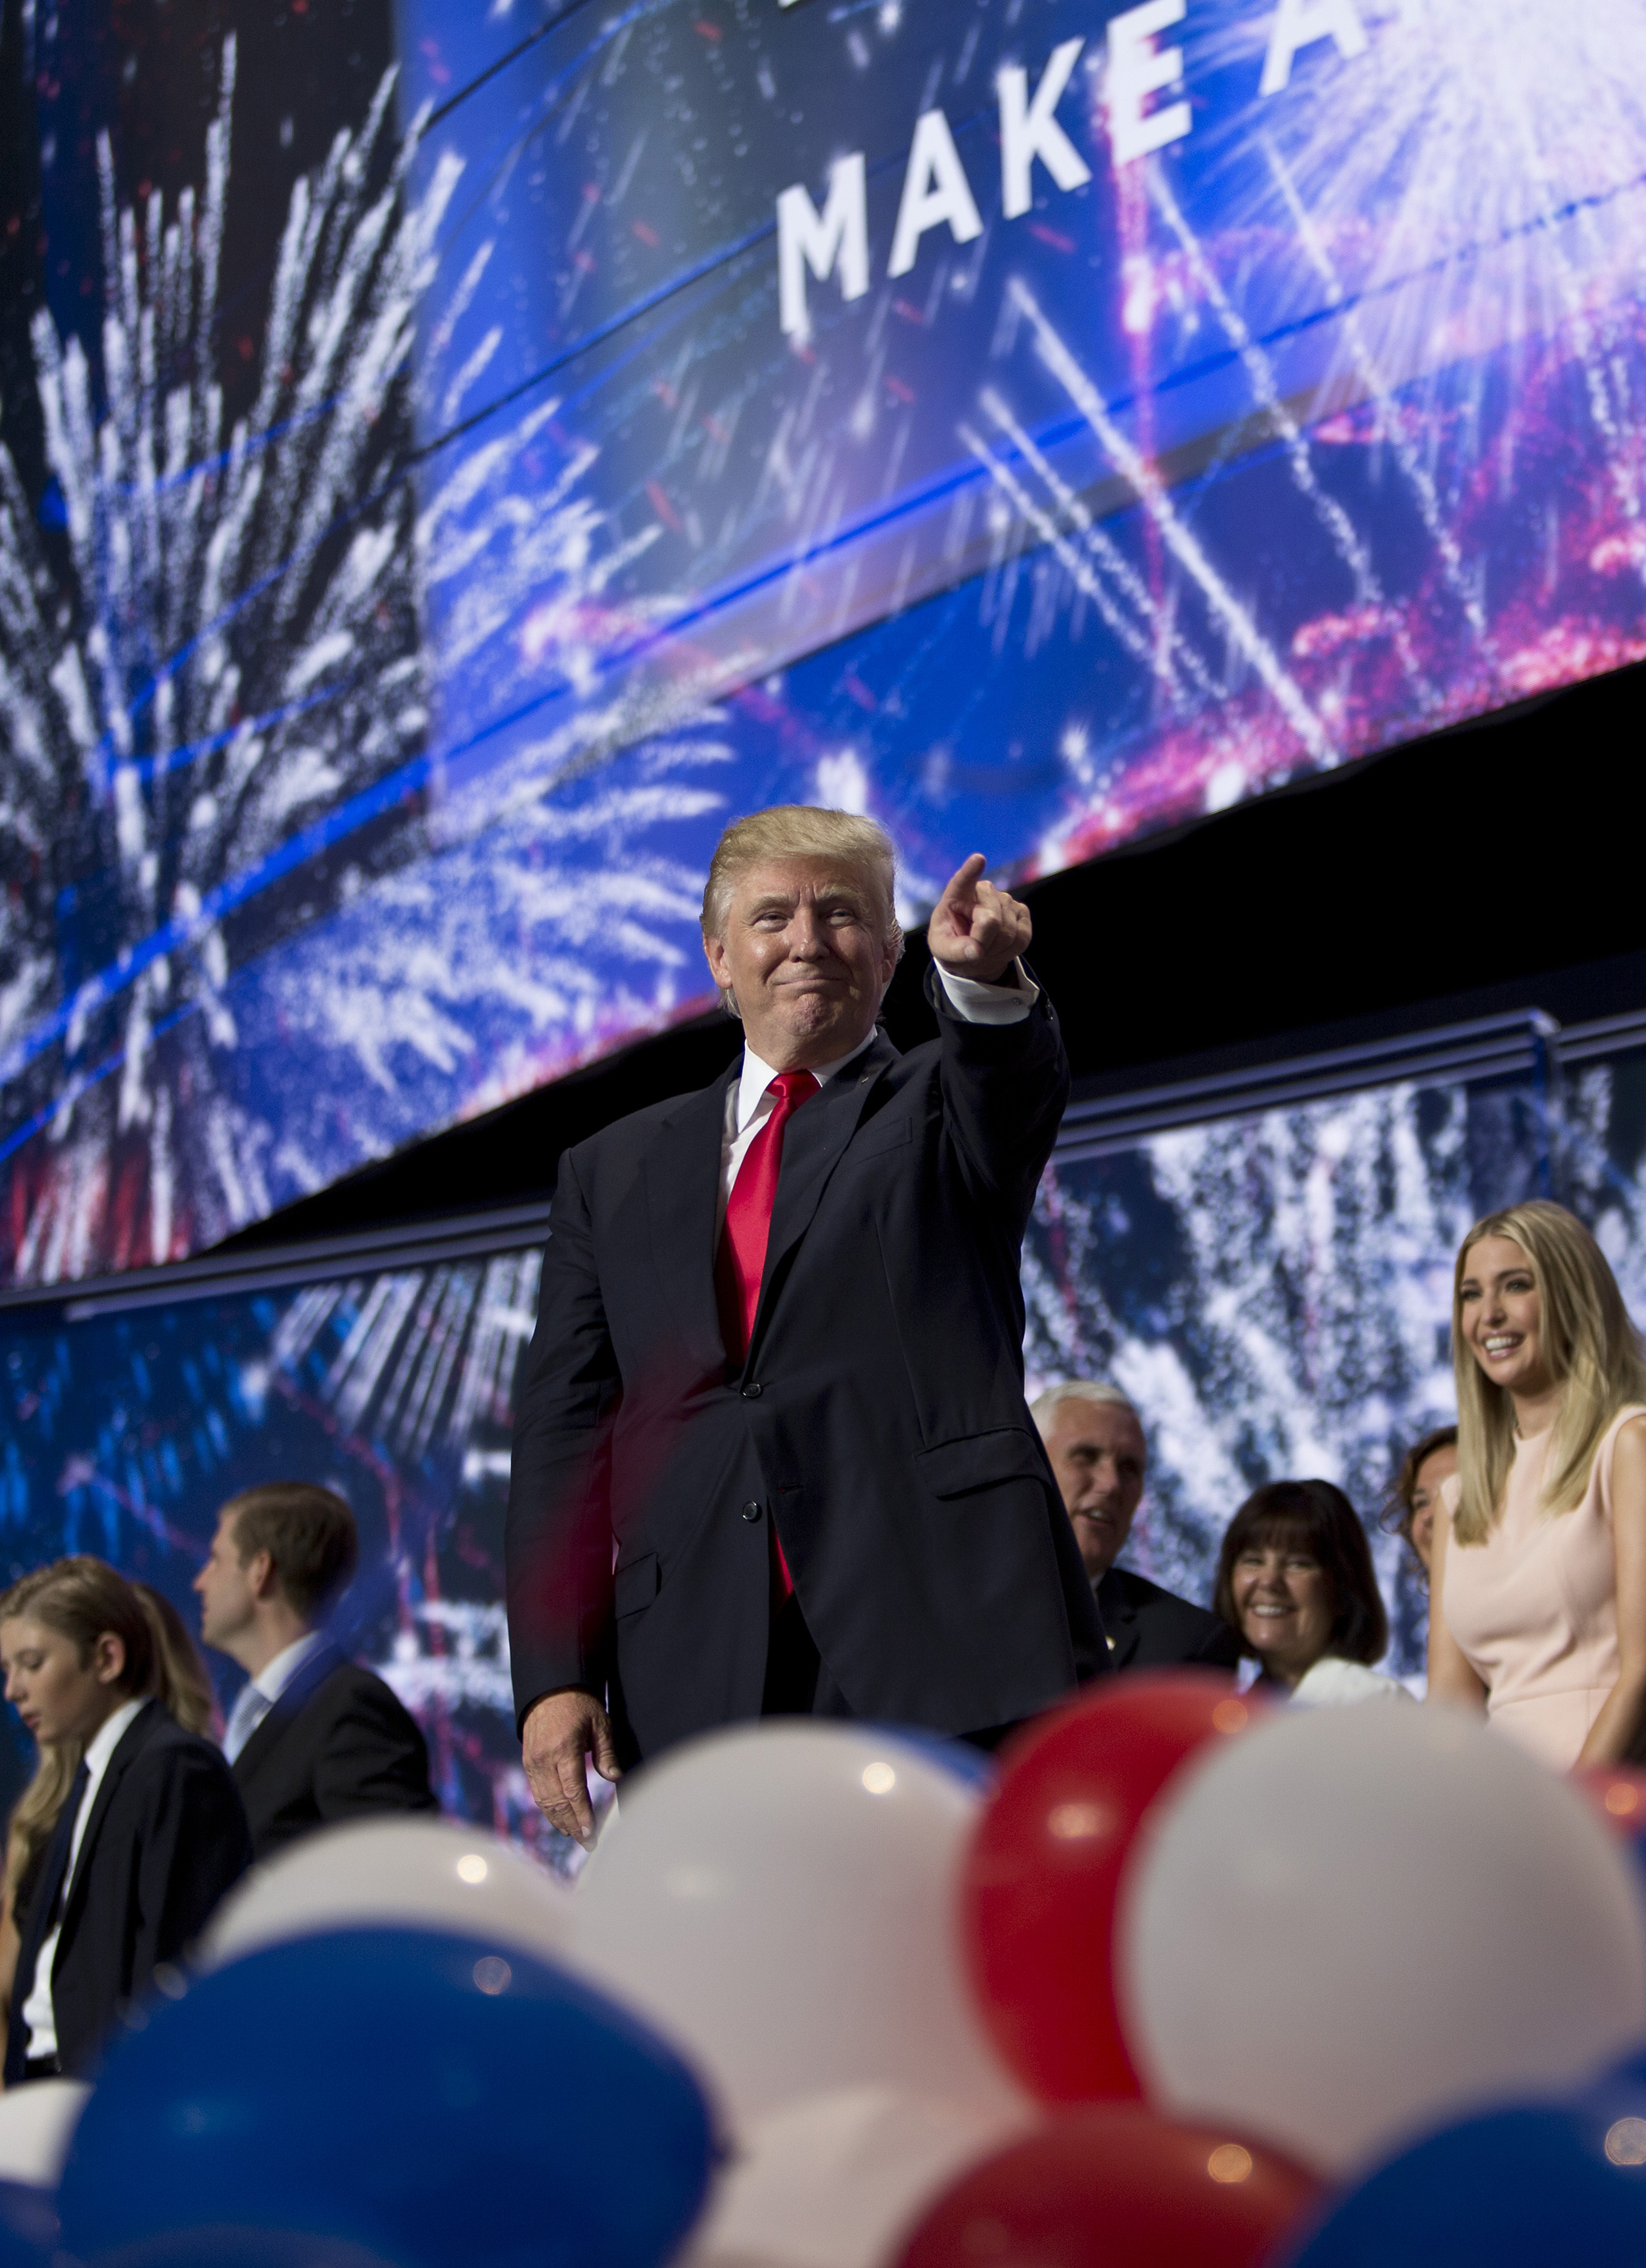 Republican presidential candidate Donald Trump and Republican vice presidential candidate Mike Pence stand with their families at the end of the Republican National Convention on July 21, 2016 at the Quicken Loans Arena in Cleveland.